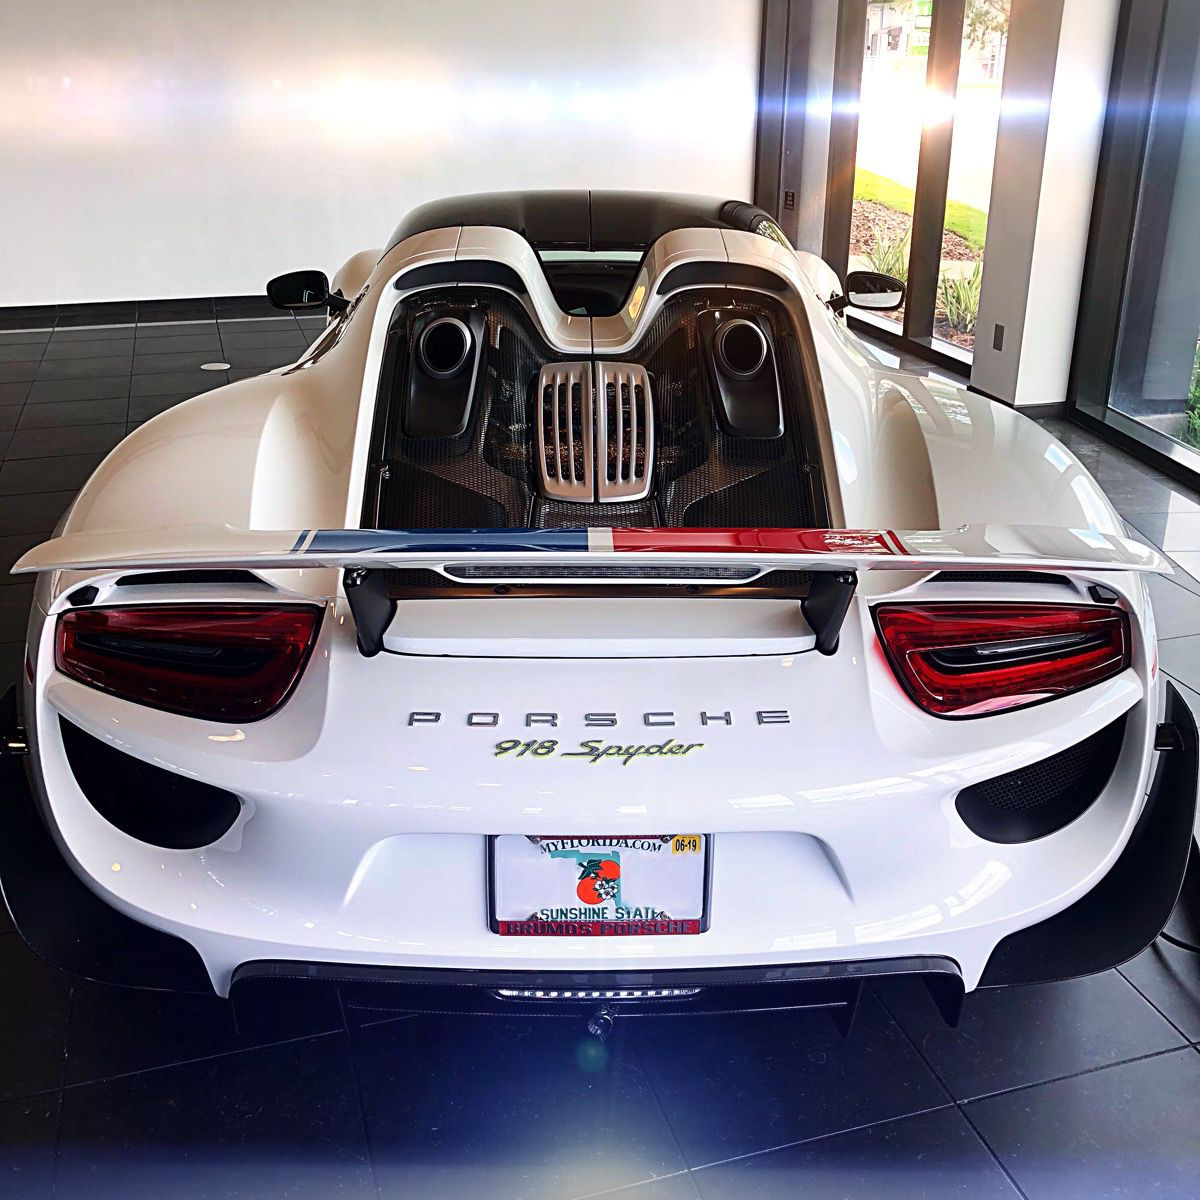 Pin by Daniel Kohn on Toys (With images) Porsche dealership